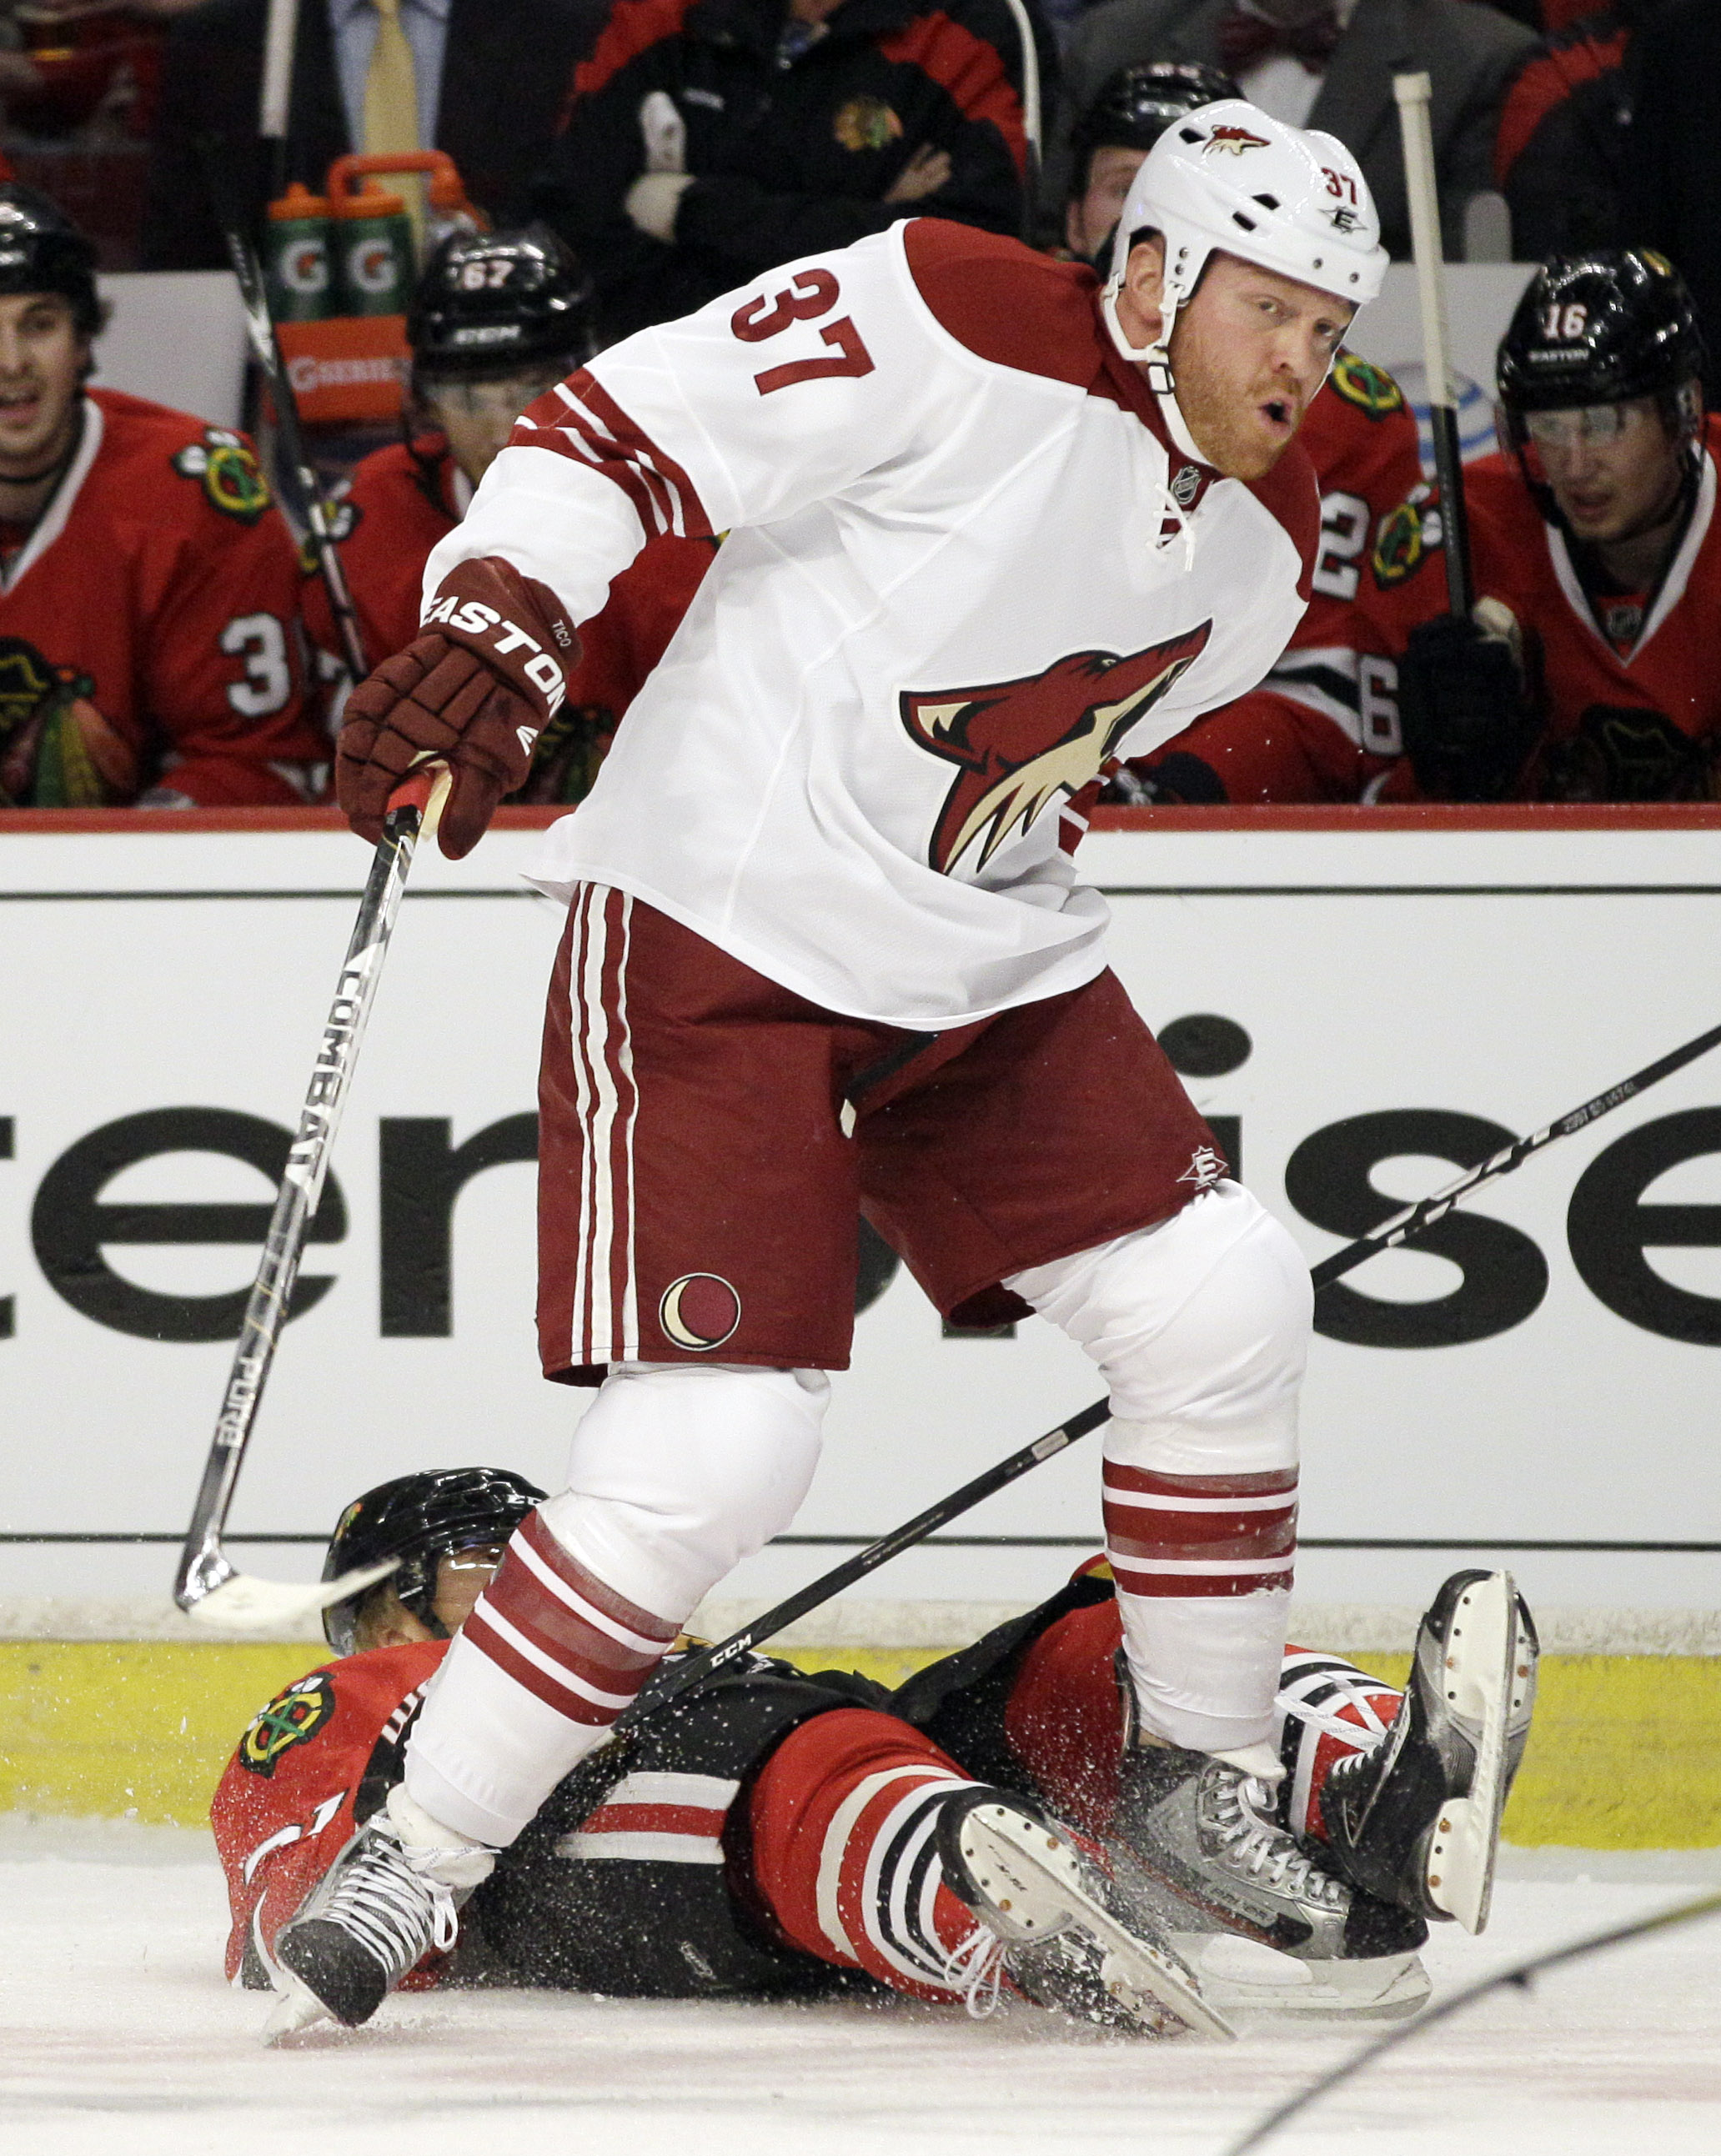 Raffi Torres knocked both himself and Marian Hossa out of the 2012 playoffs with this hit. (AP)